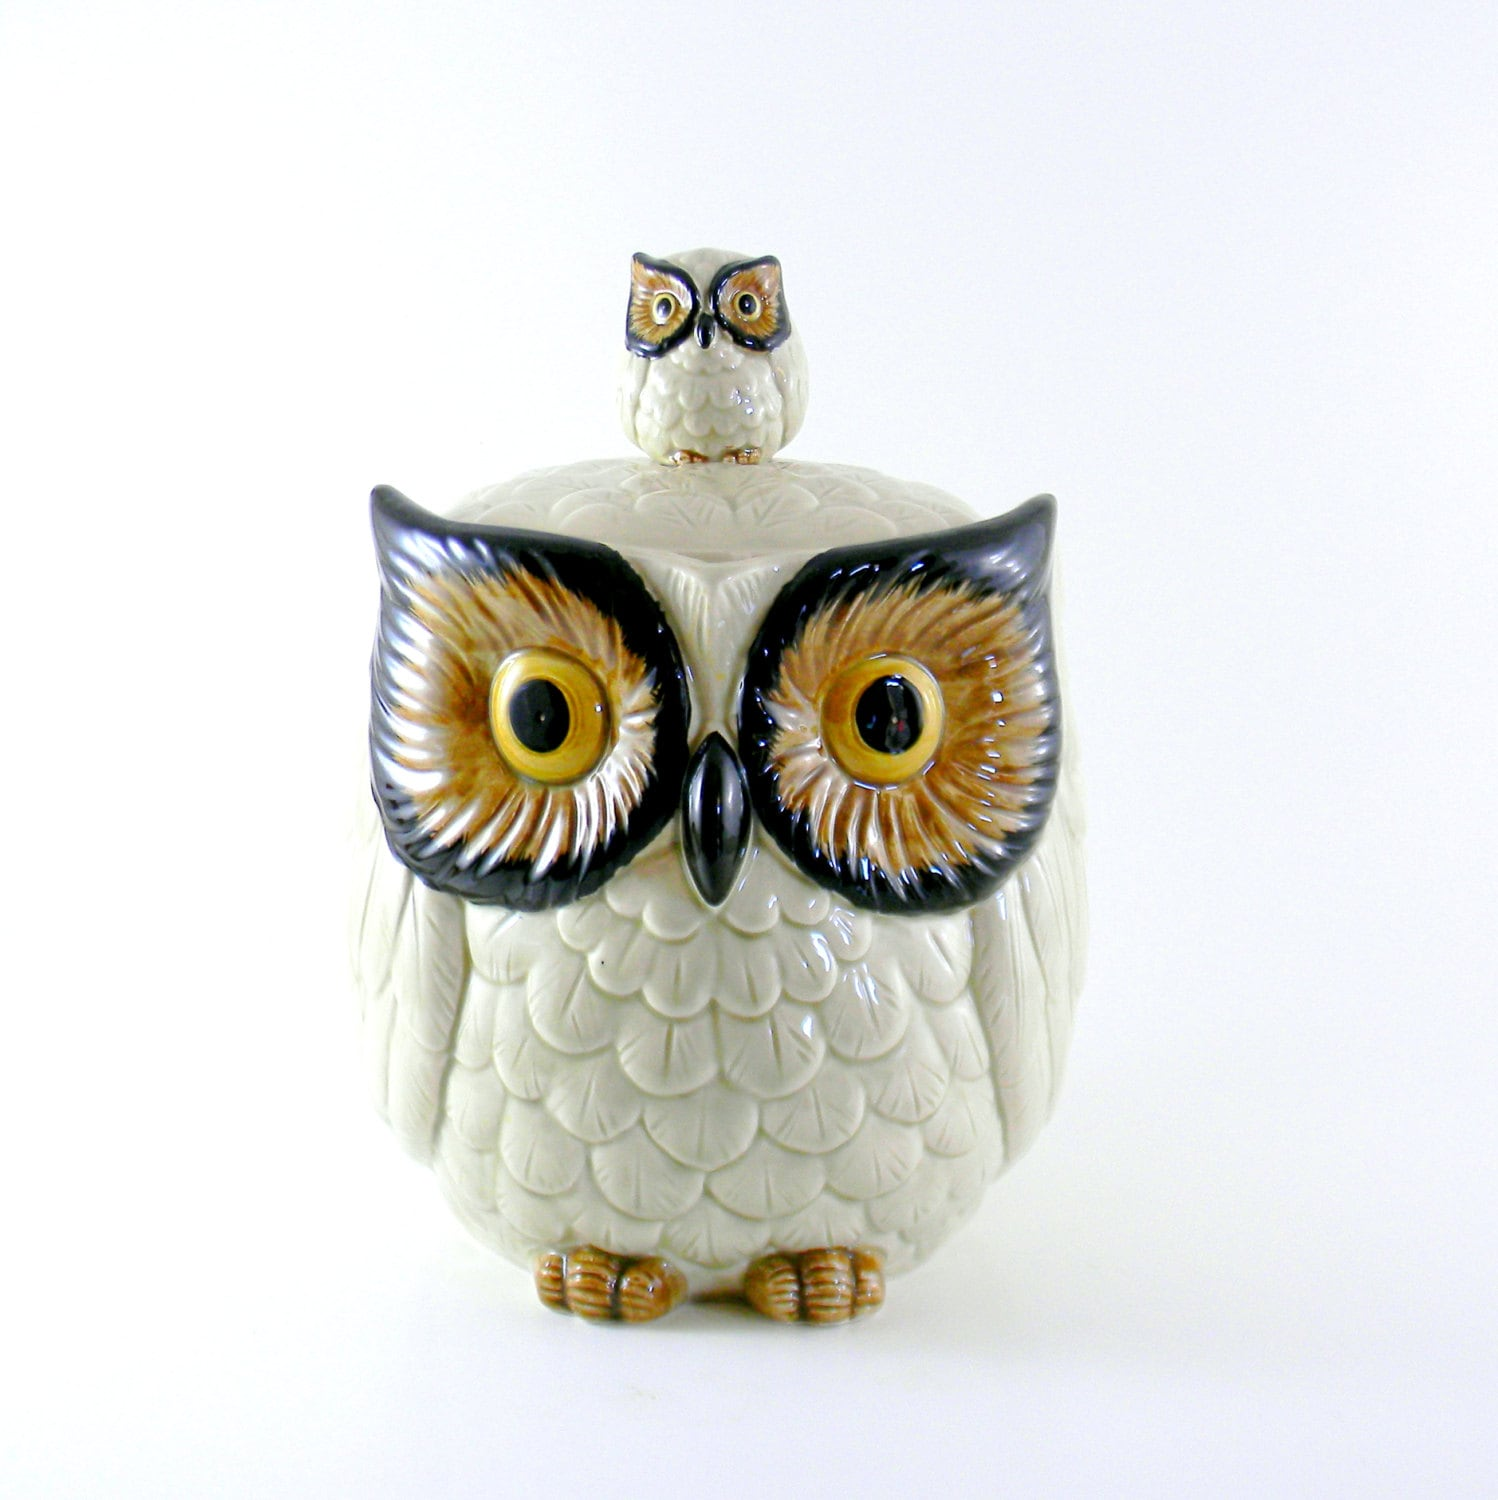 Tall bathroom vanity - Owl Cookie Jar Vintage 1960s Large Otagiri By Blissandvinegar